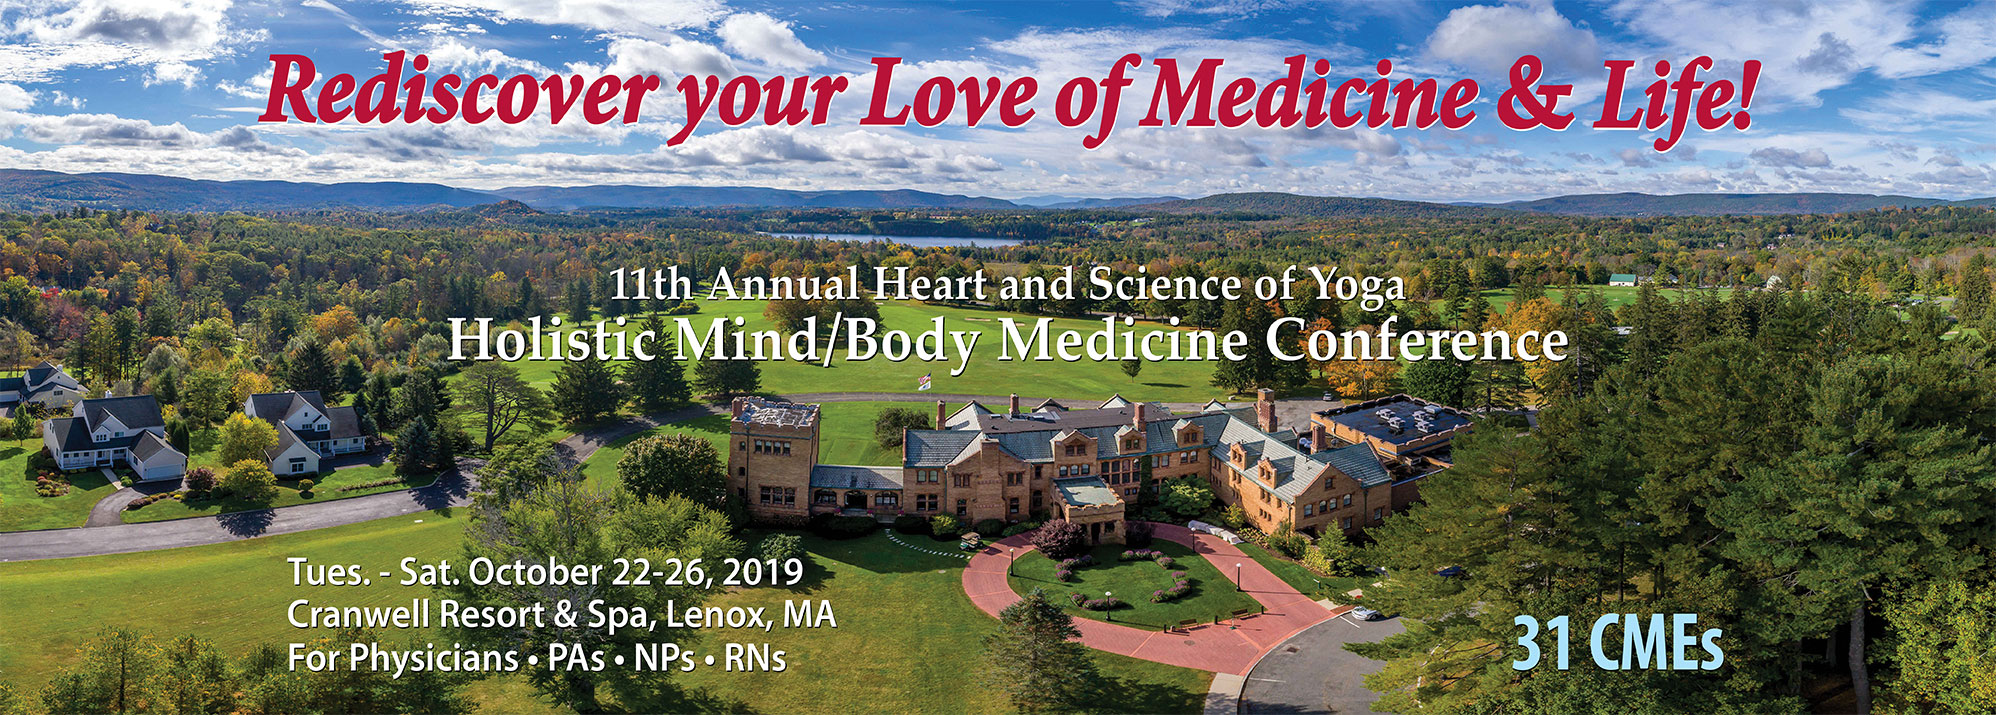 11th Annual Heart and Science of Yoga Holistic Mind/Body Medicine Conference, Cranwell Spa, Lenox Massachusetts